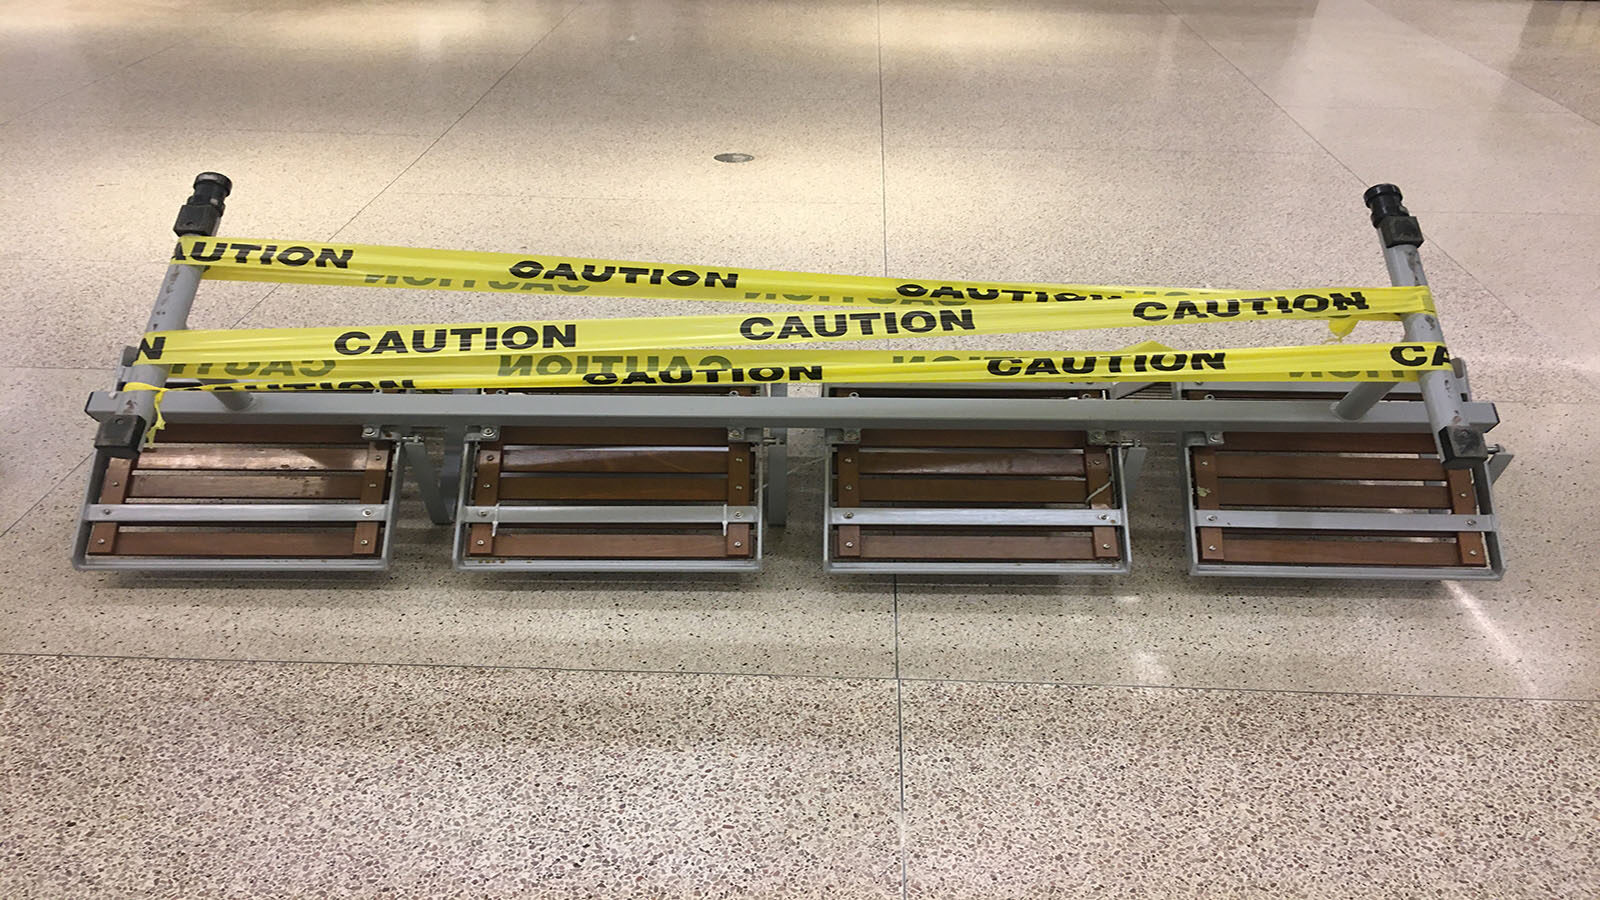 Union Station benches folded on the floor and wrapped in caution tape.